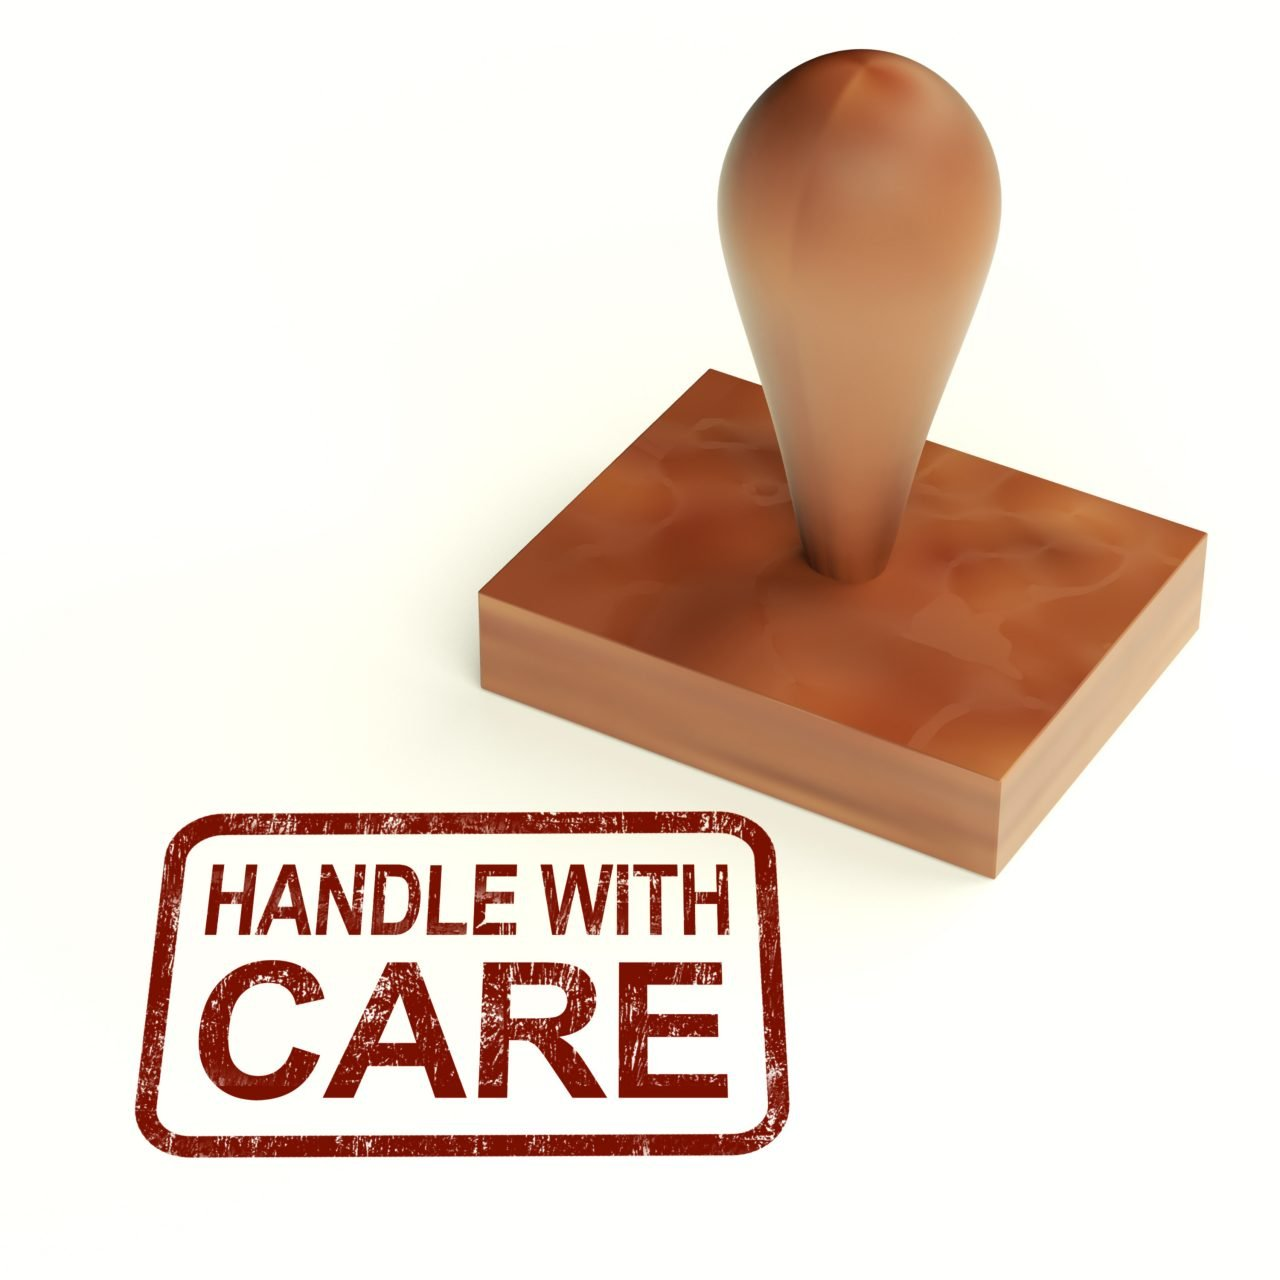 Product care, handle with care stamp